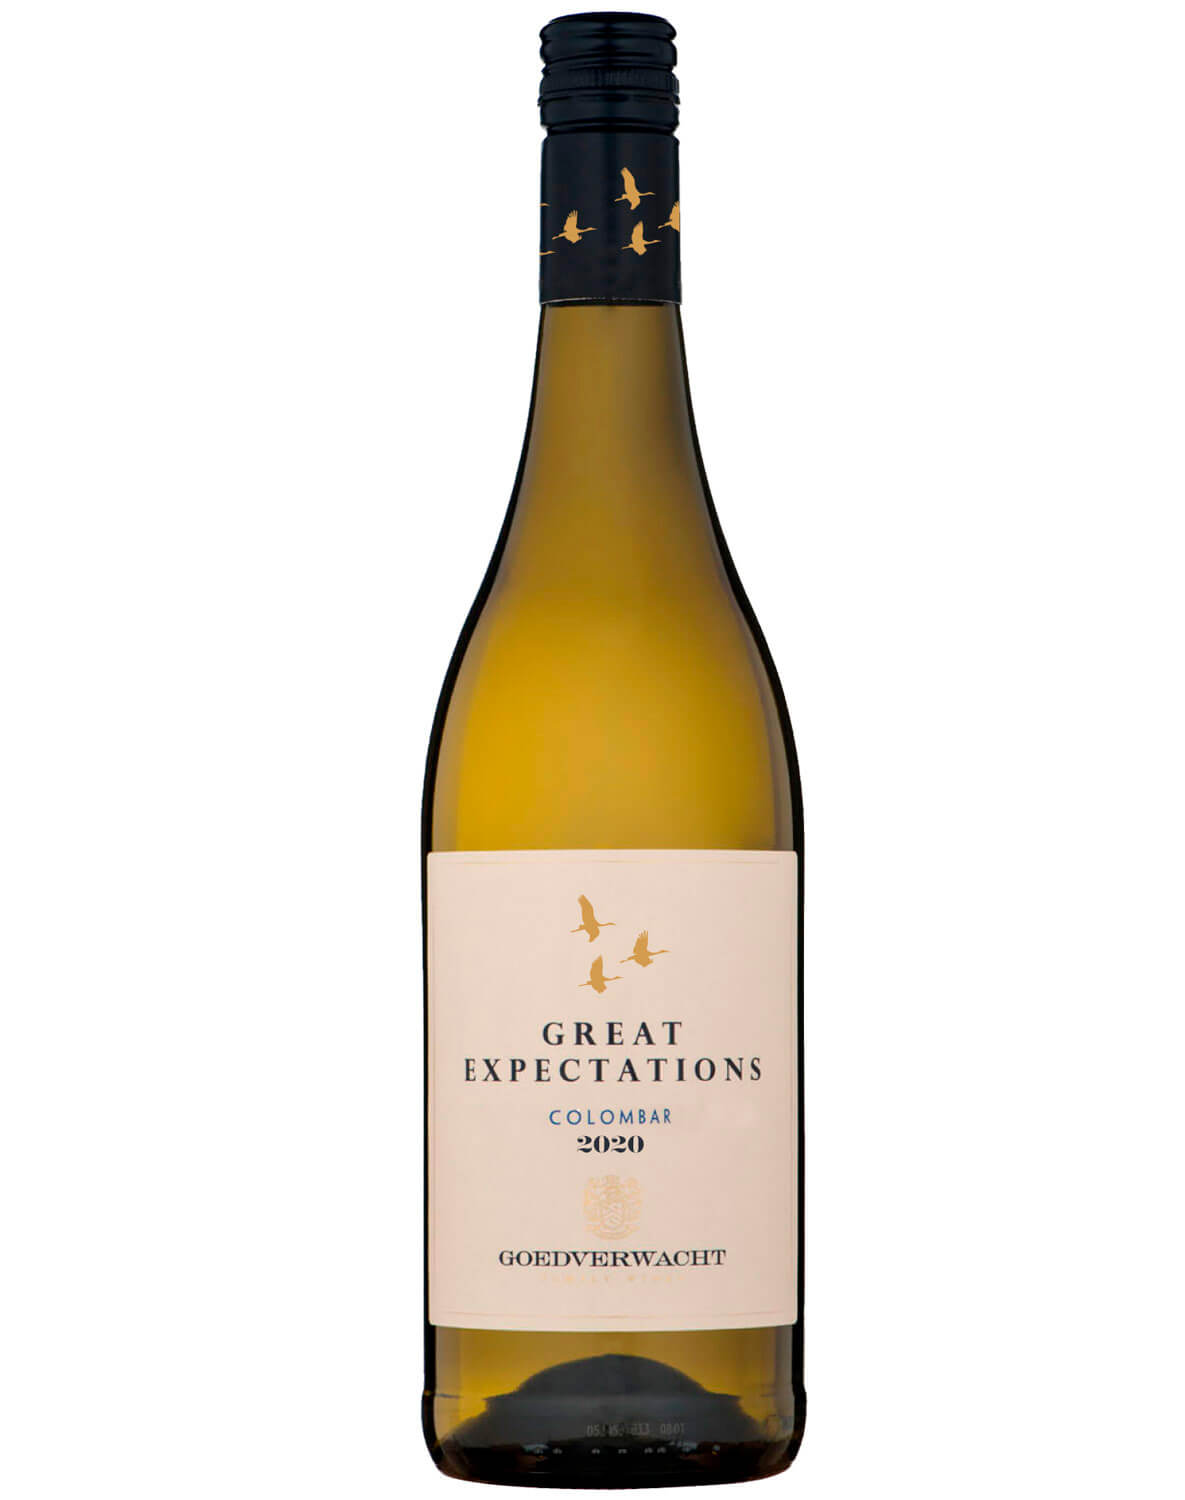 Vinho Branco Great Expectations Colombar 2020